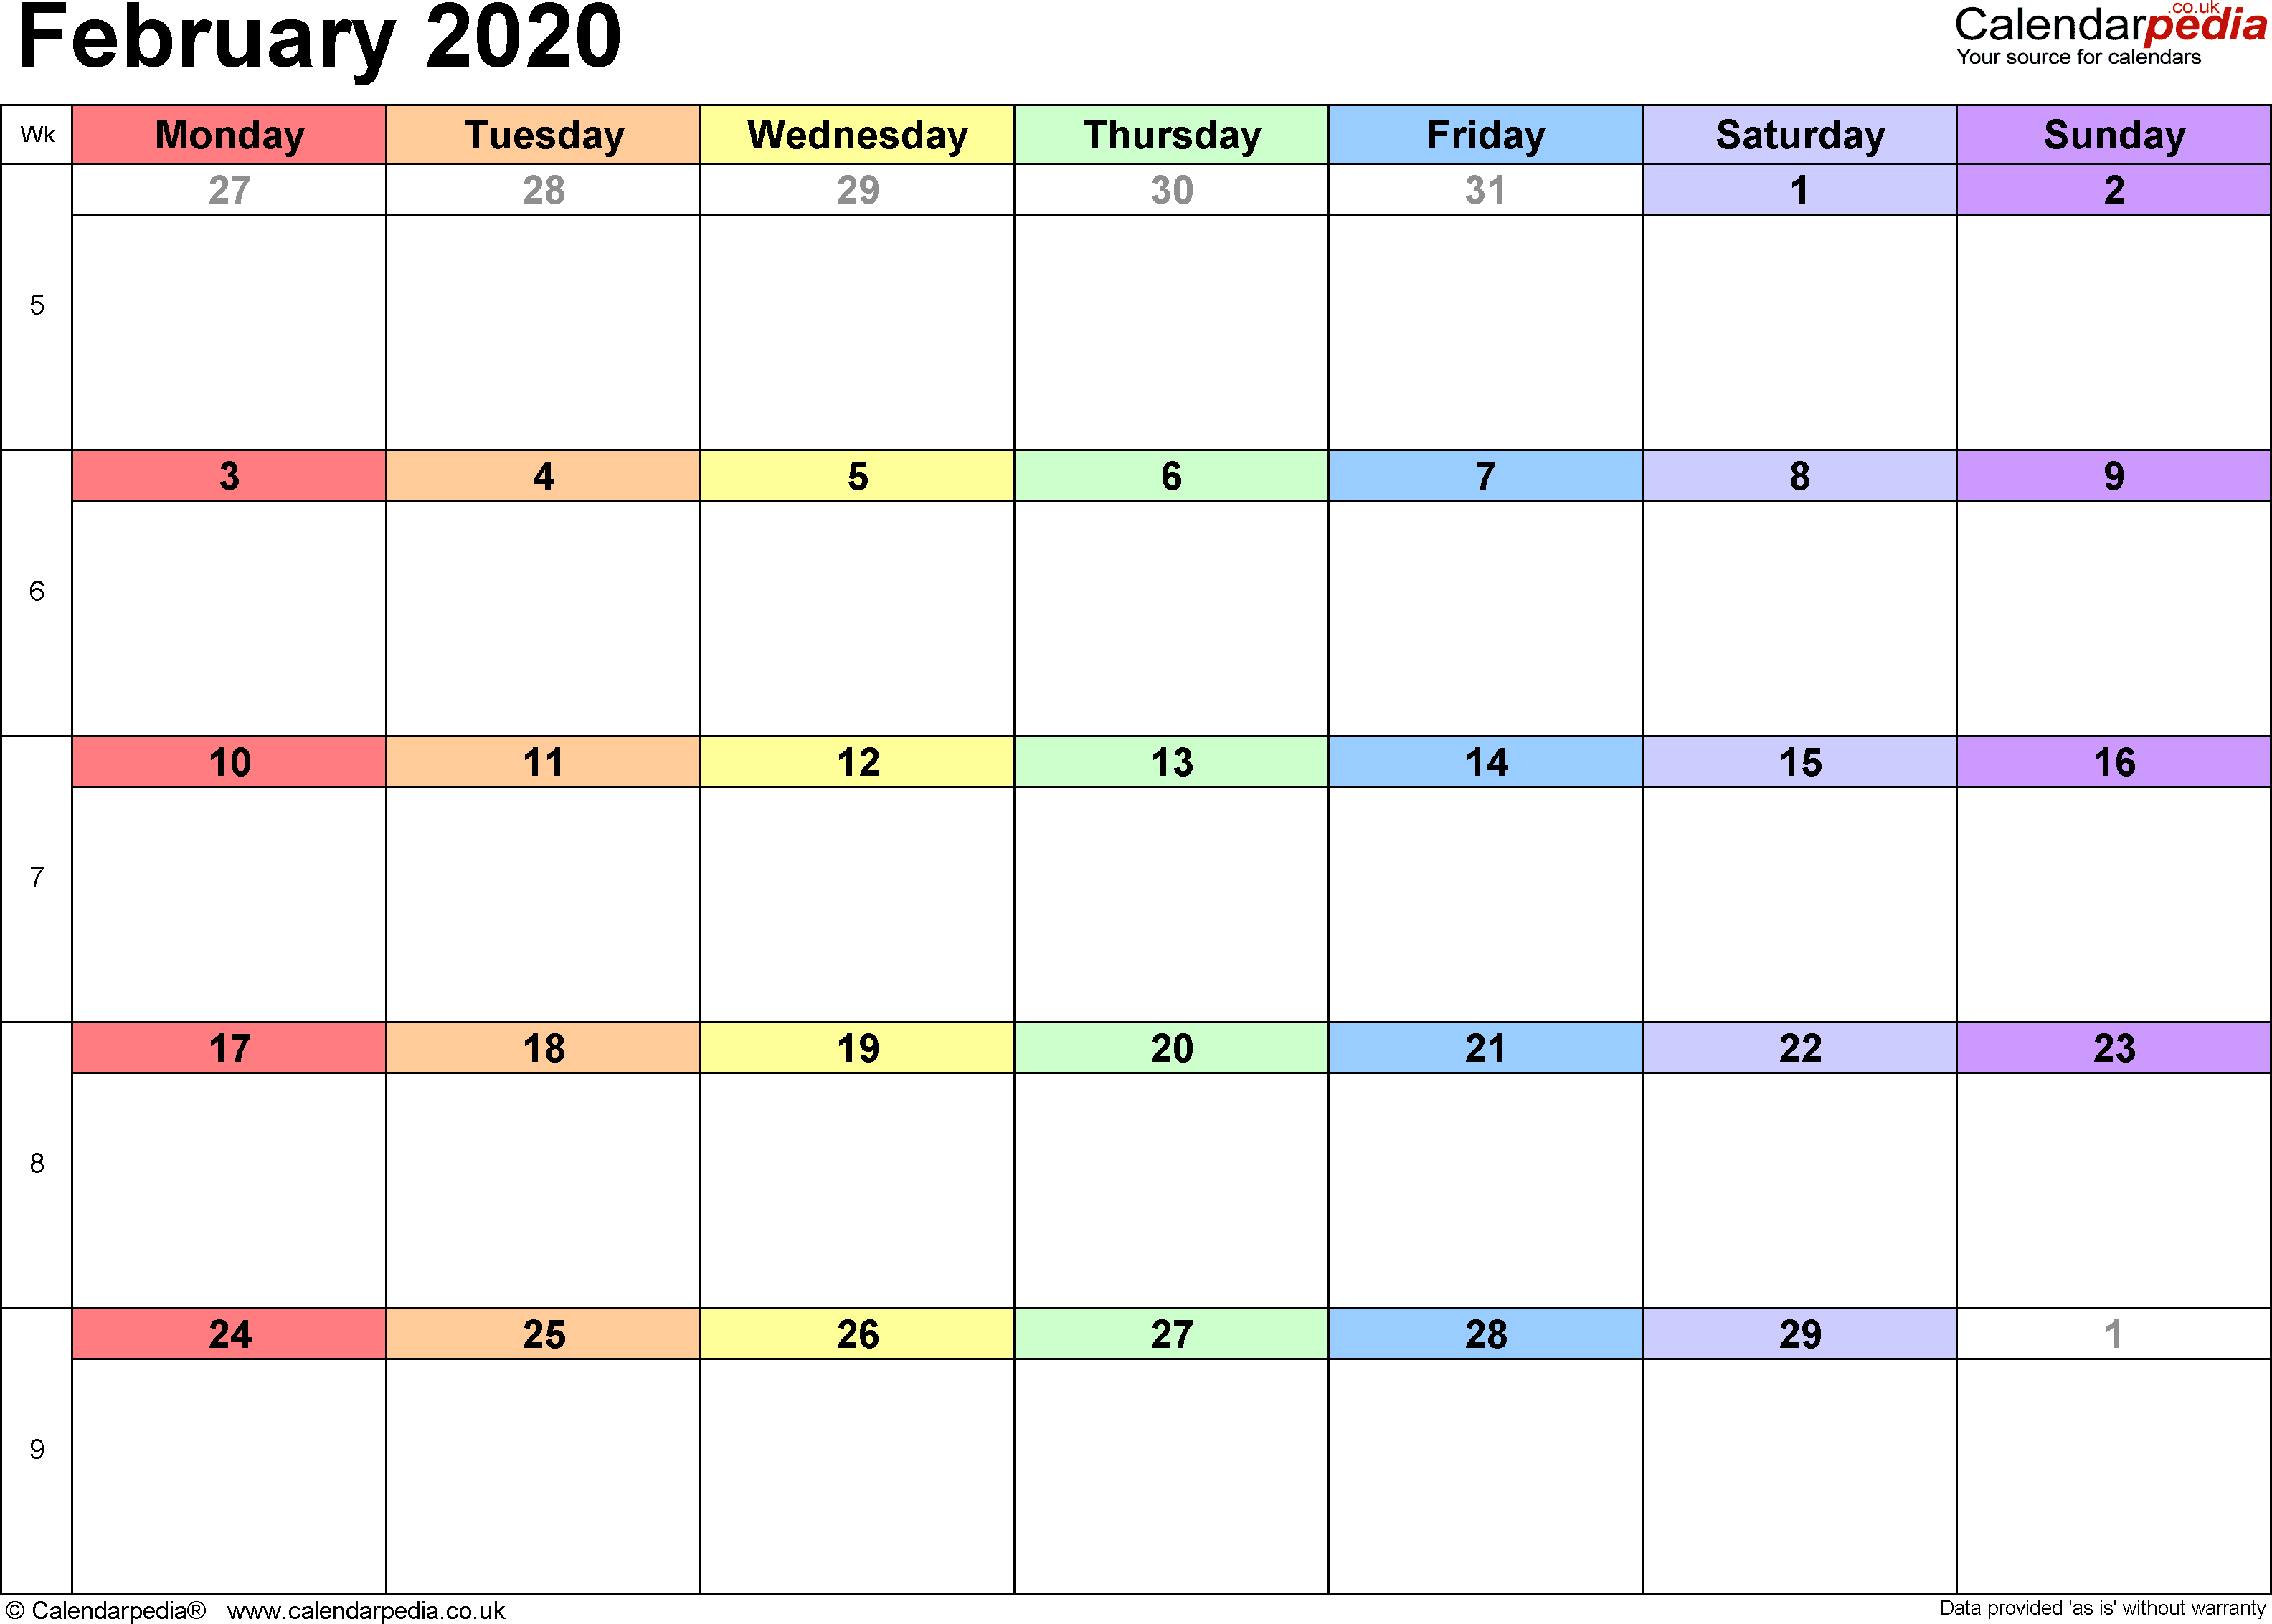 Calendar February 2020, landscape orientation, 1 page, with UK bank holidays and week numbers